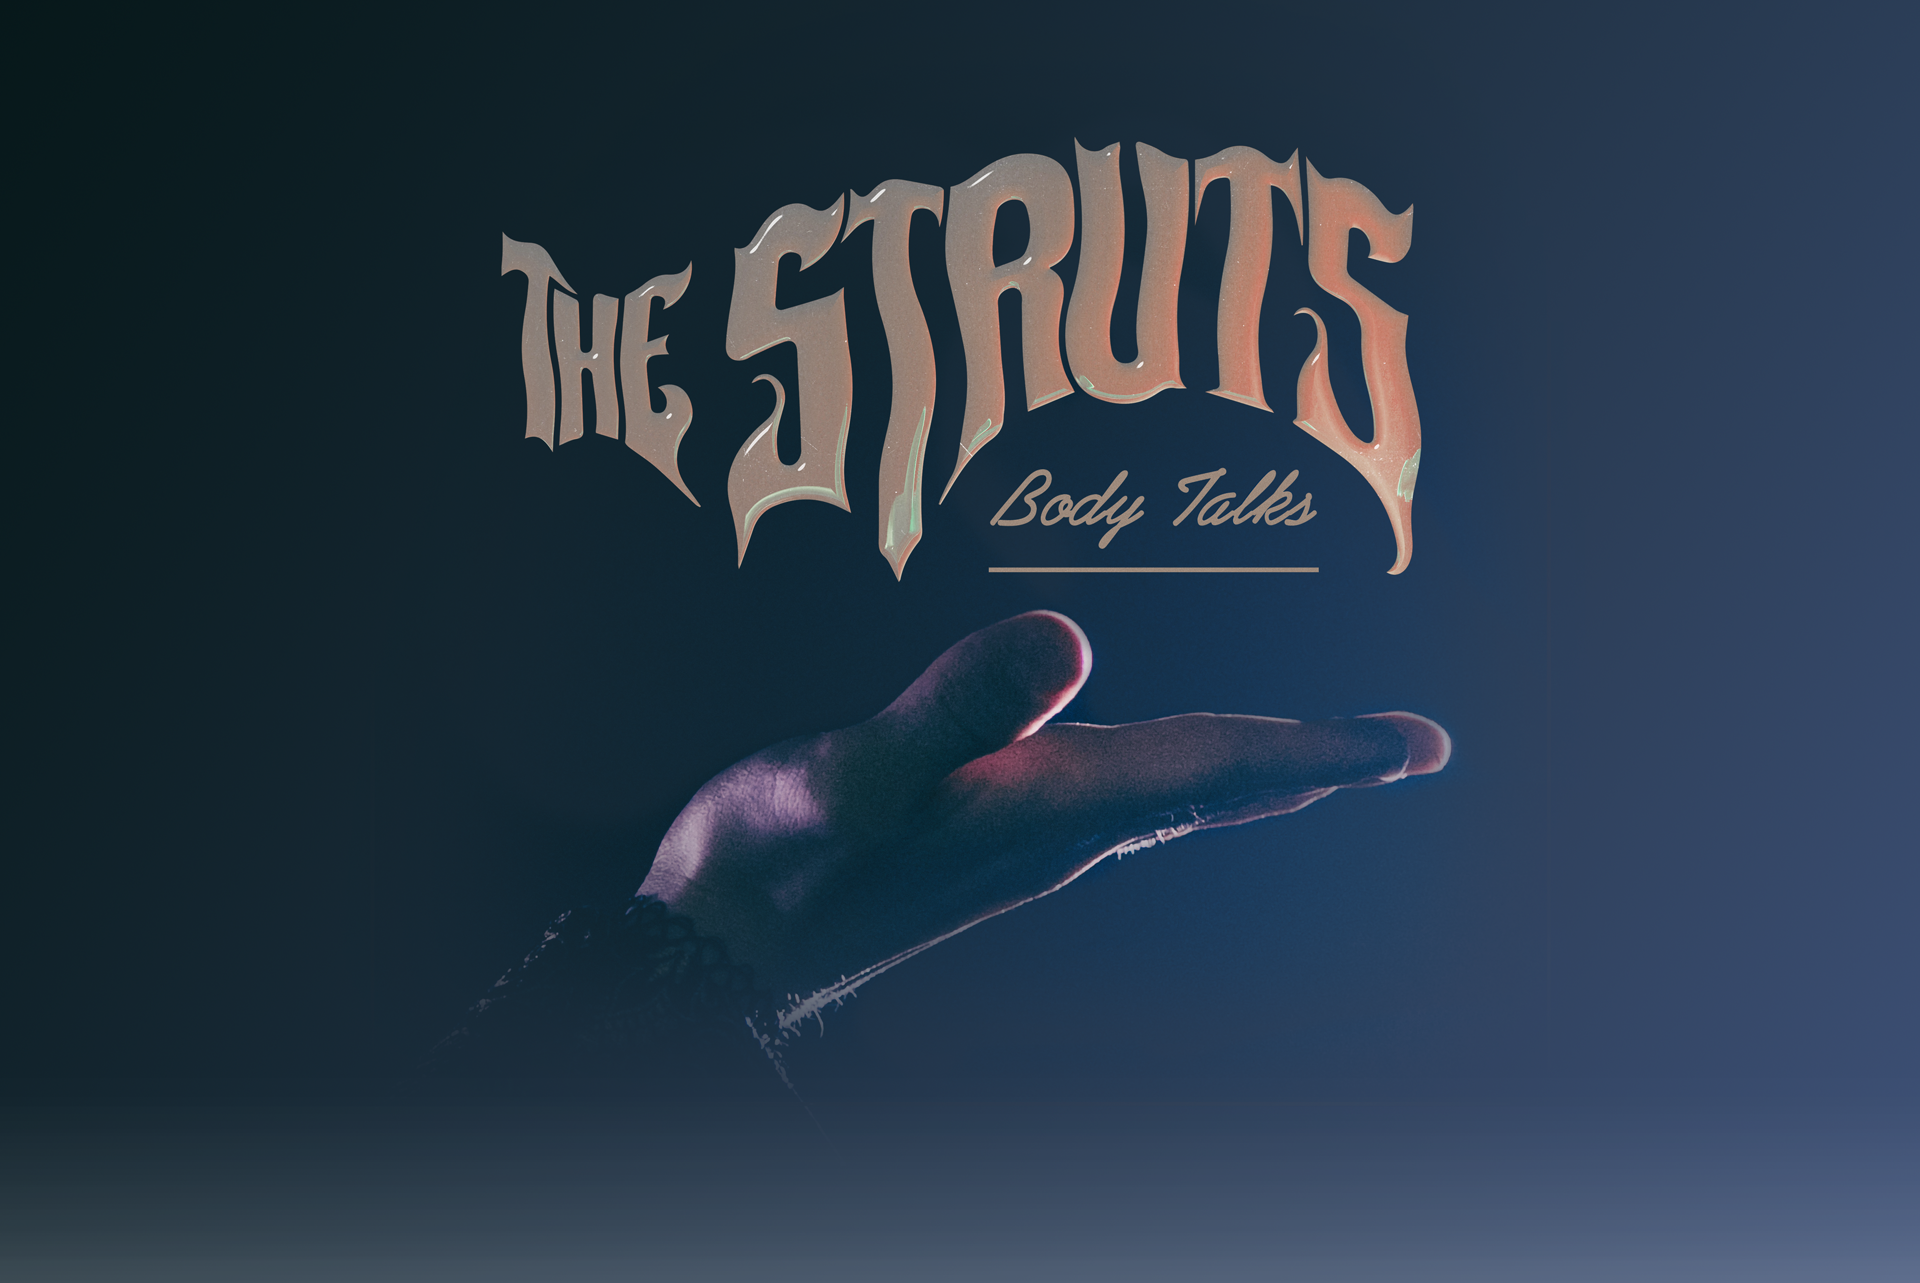 New Song From The Struts - Body Talks.